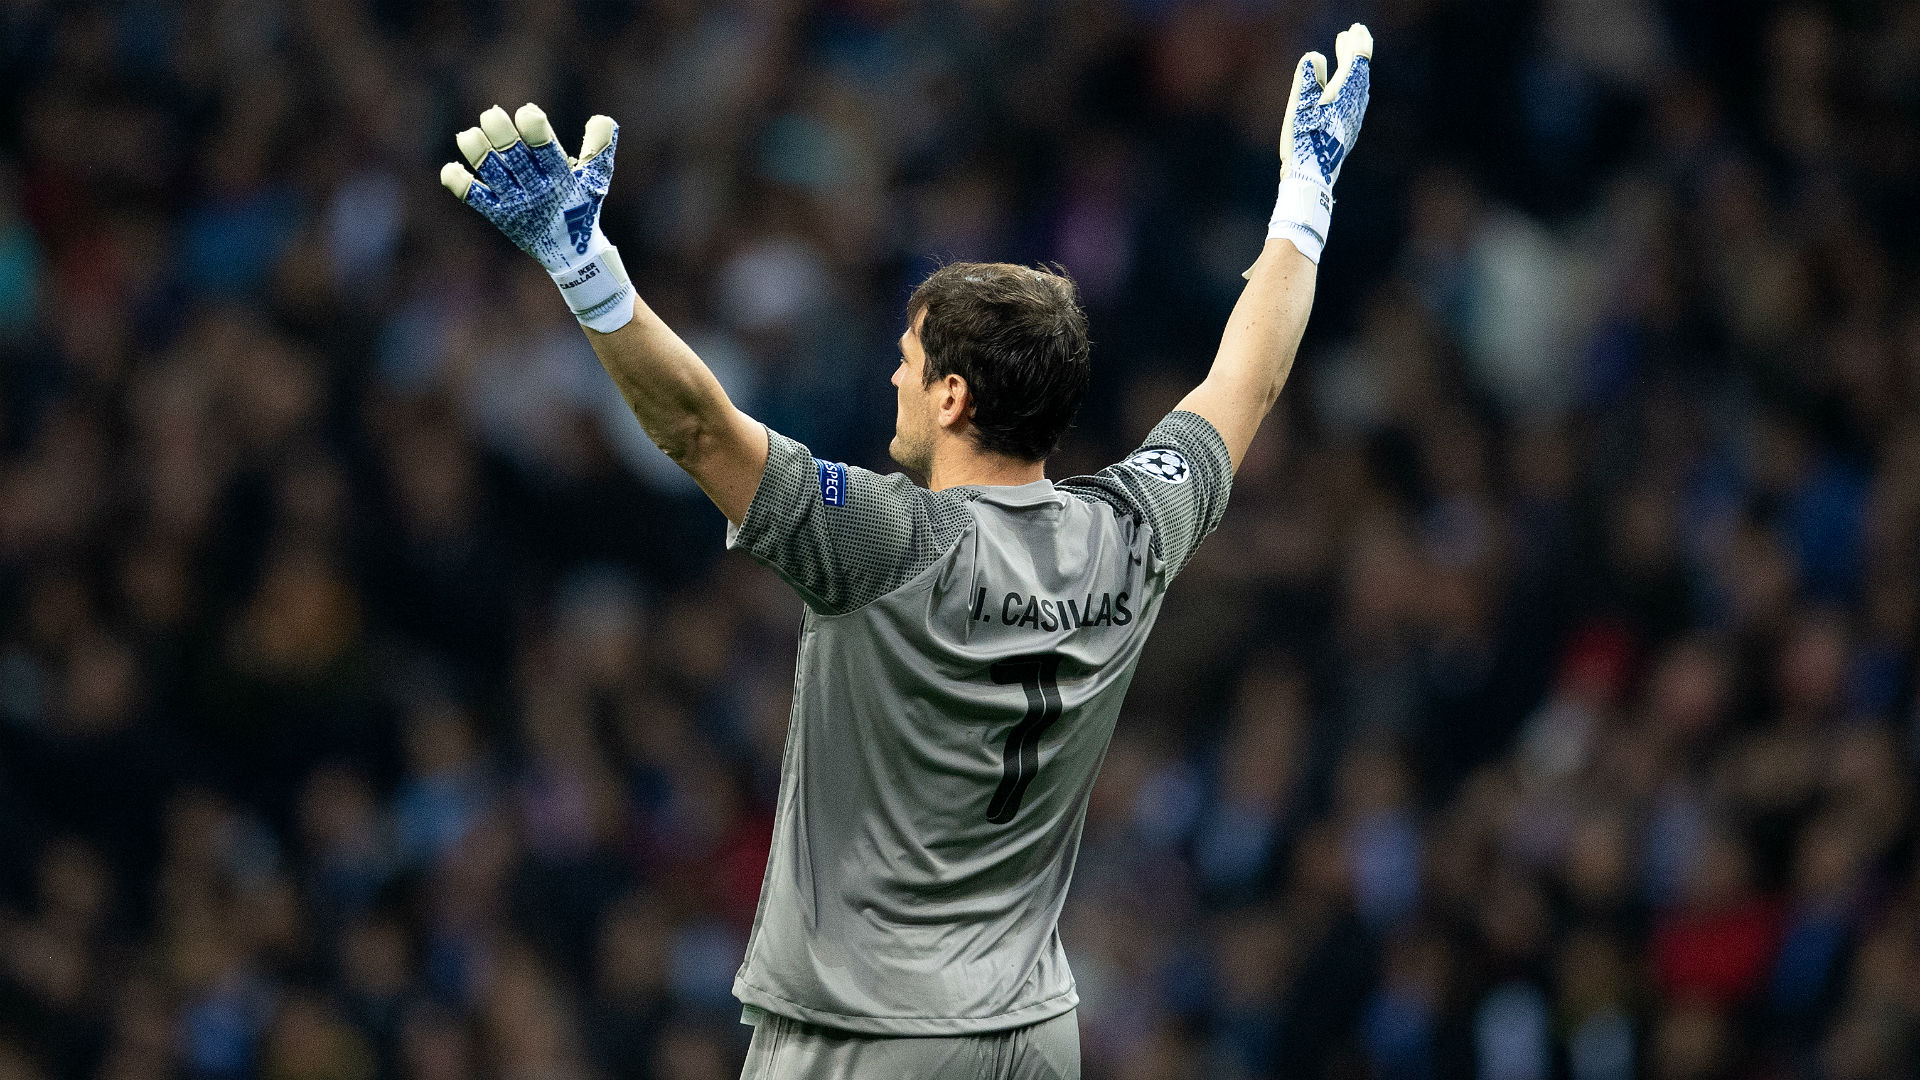 For now, relax - Casillas denies he will retire after heart attack